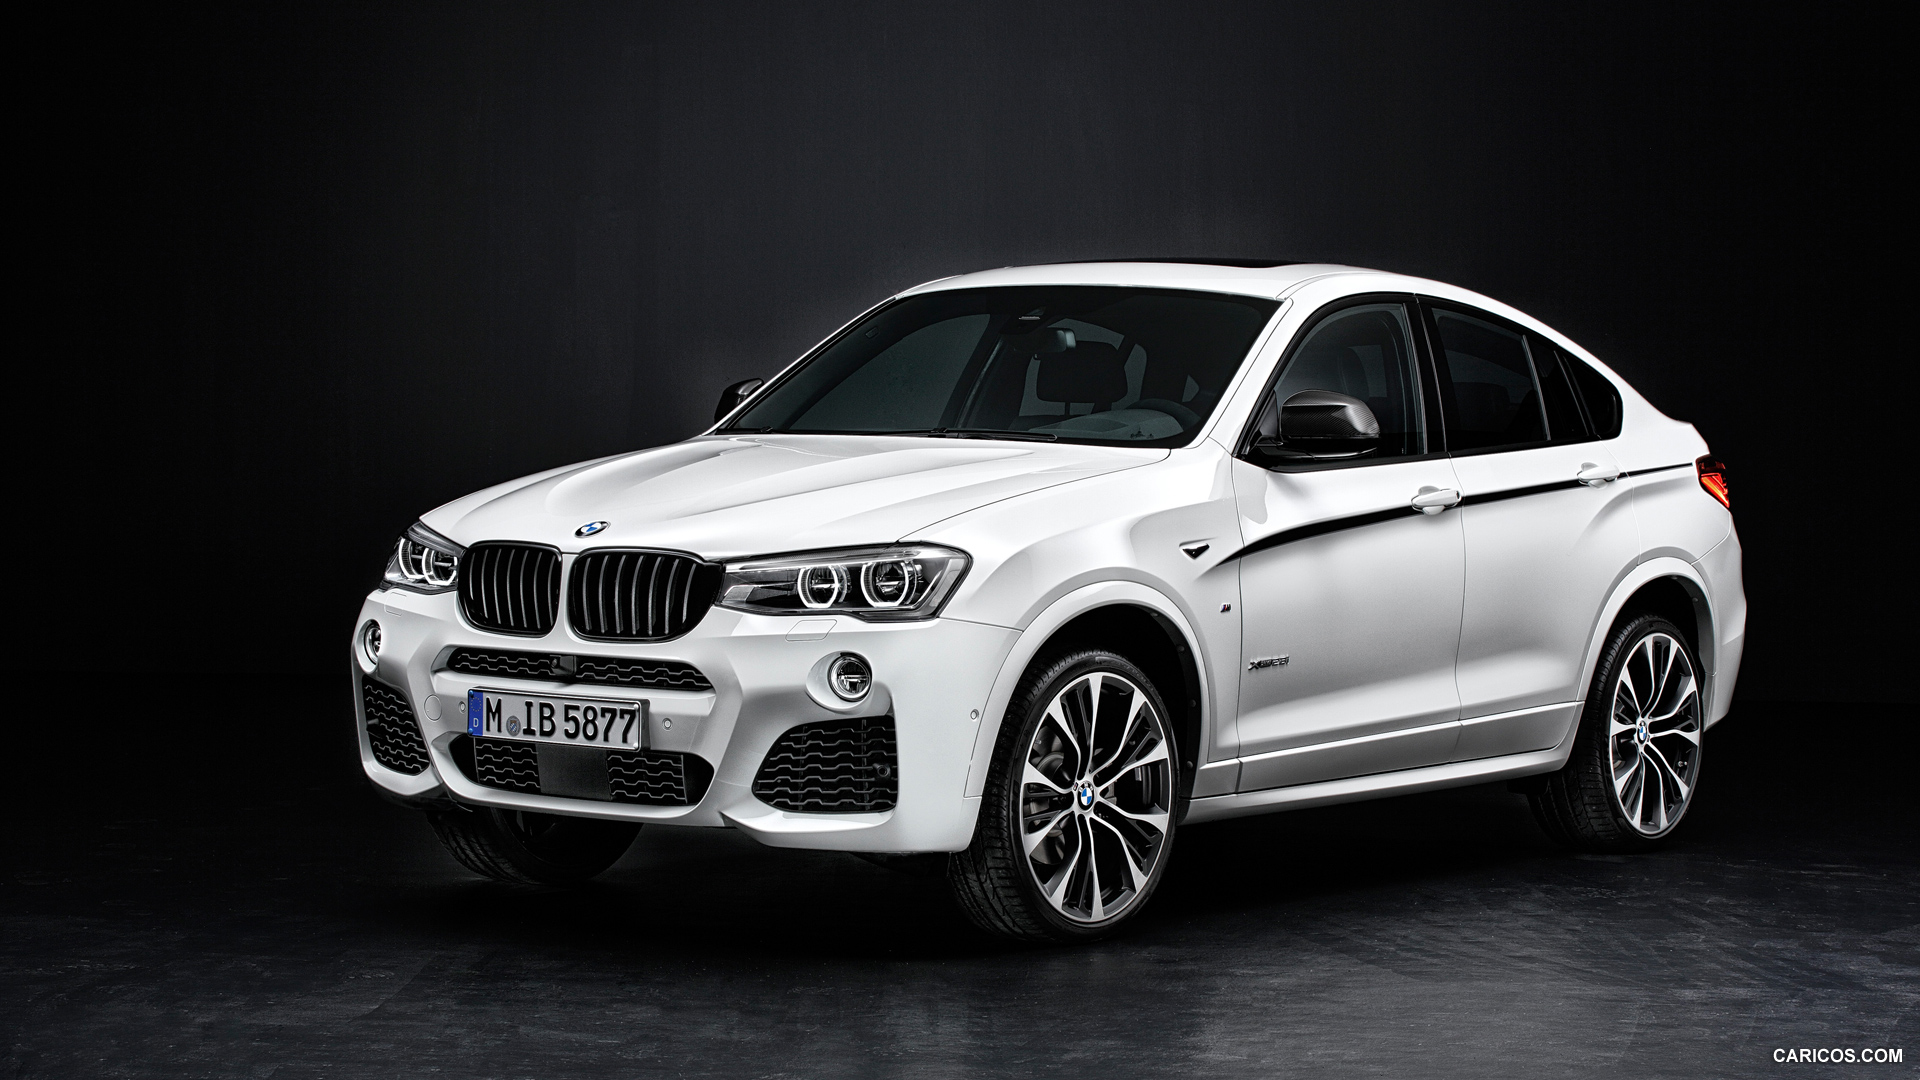 1920x1080 - BMW X4 Wallpapers 13